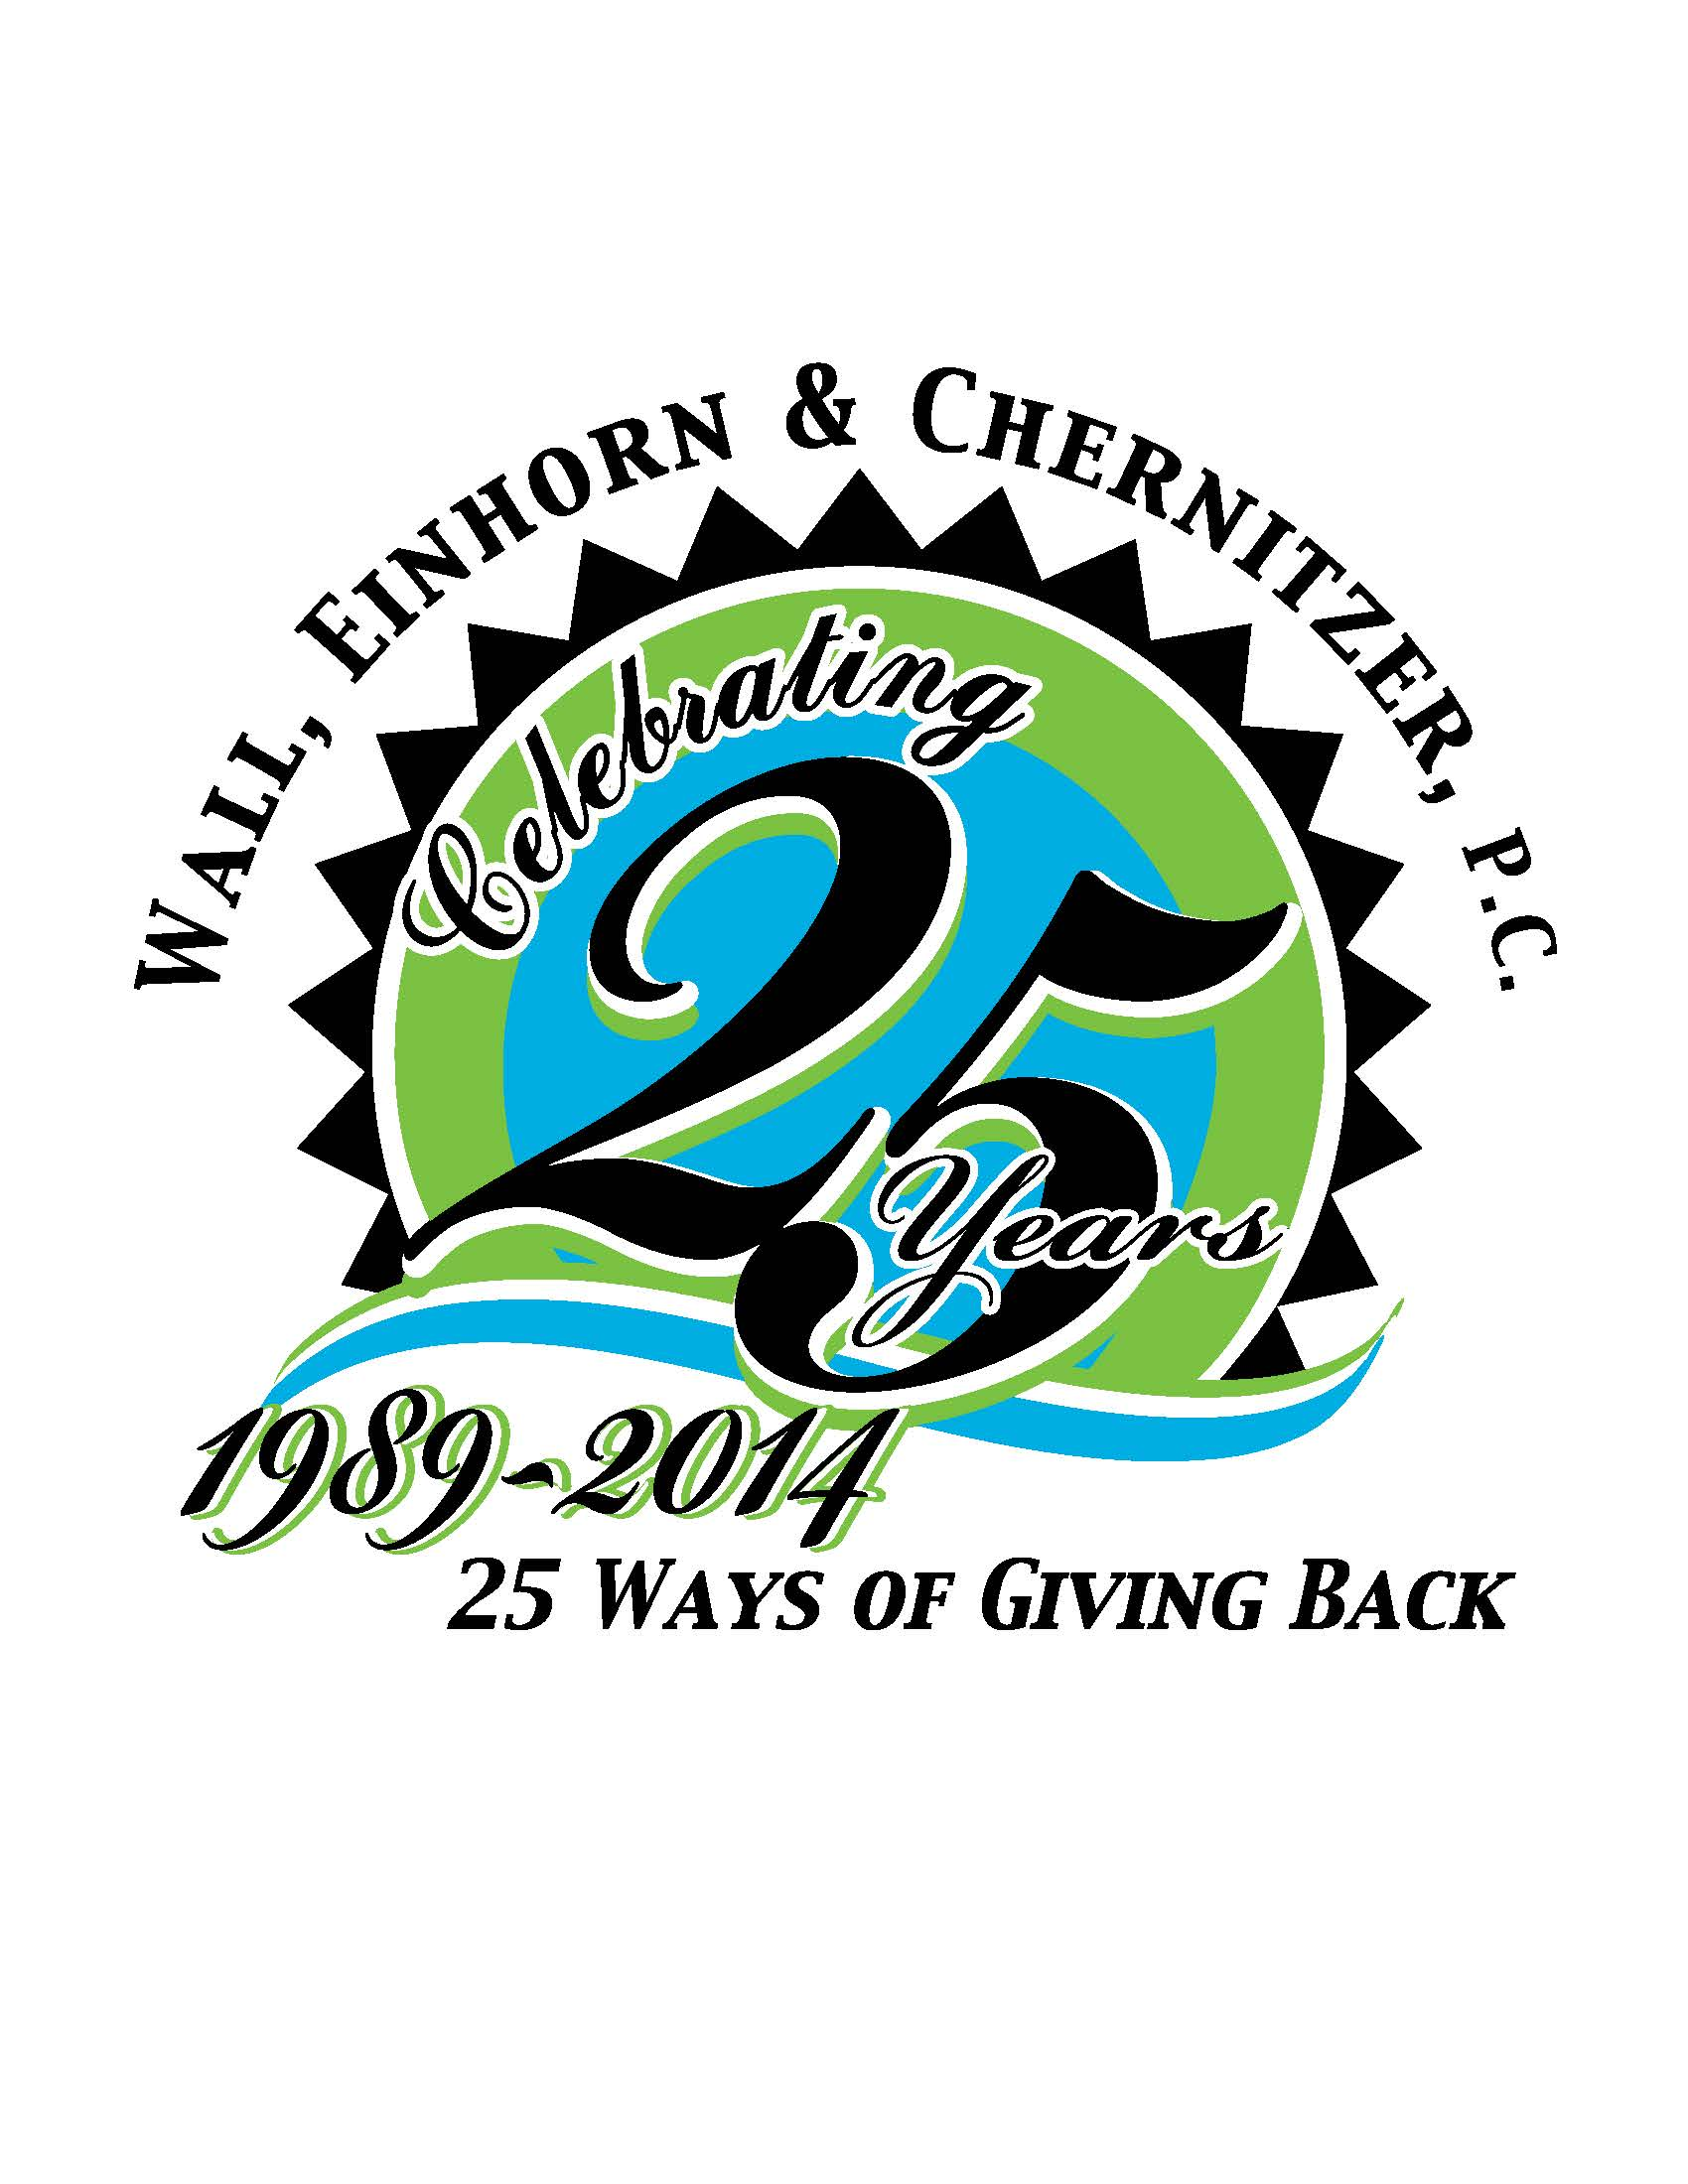 """Wall, Einhorn & Chernitzer, P.C. """"25 for 25"""" Silver Anniversary Campaign to Benefit Local Charities"""